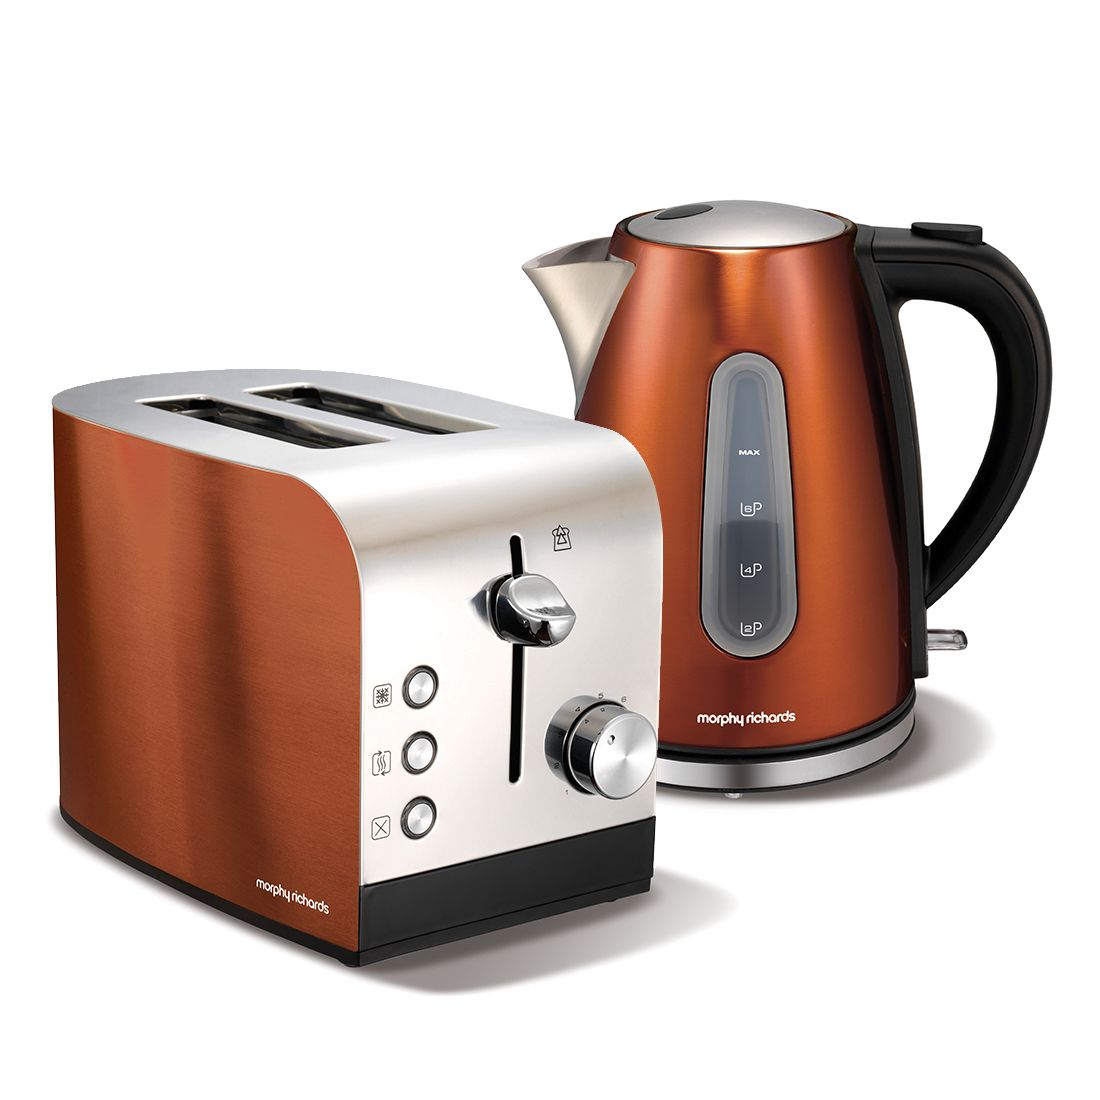 Morphy Richards Kitchen Set: Morphy Richards Copper Accents Kettle & Toaster Set